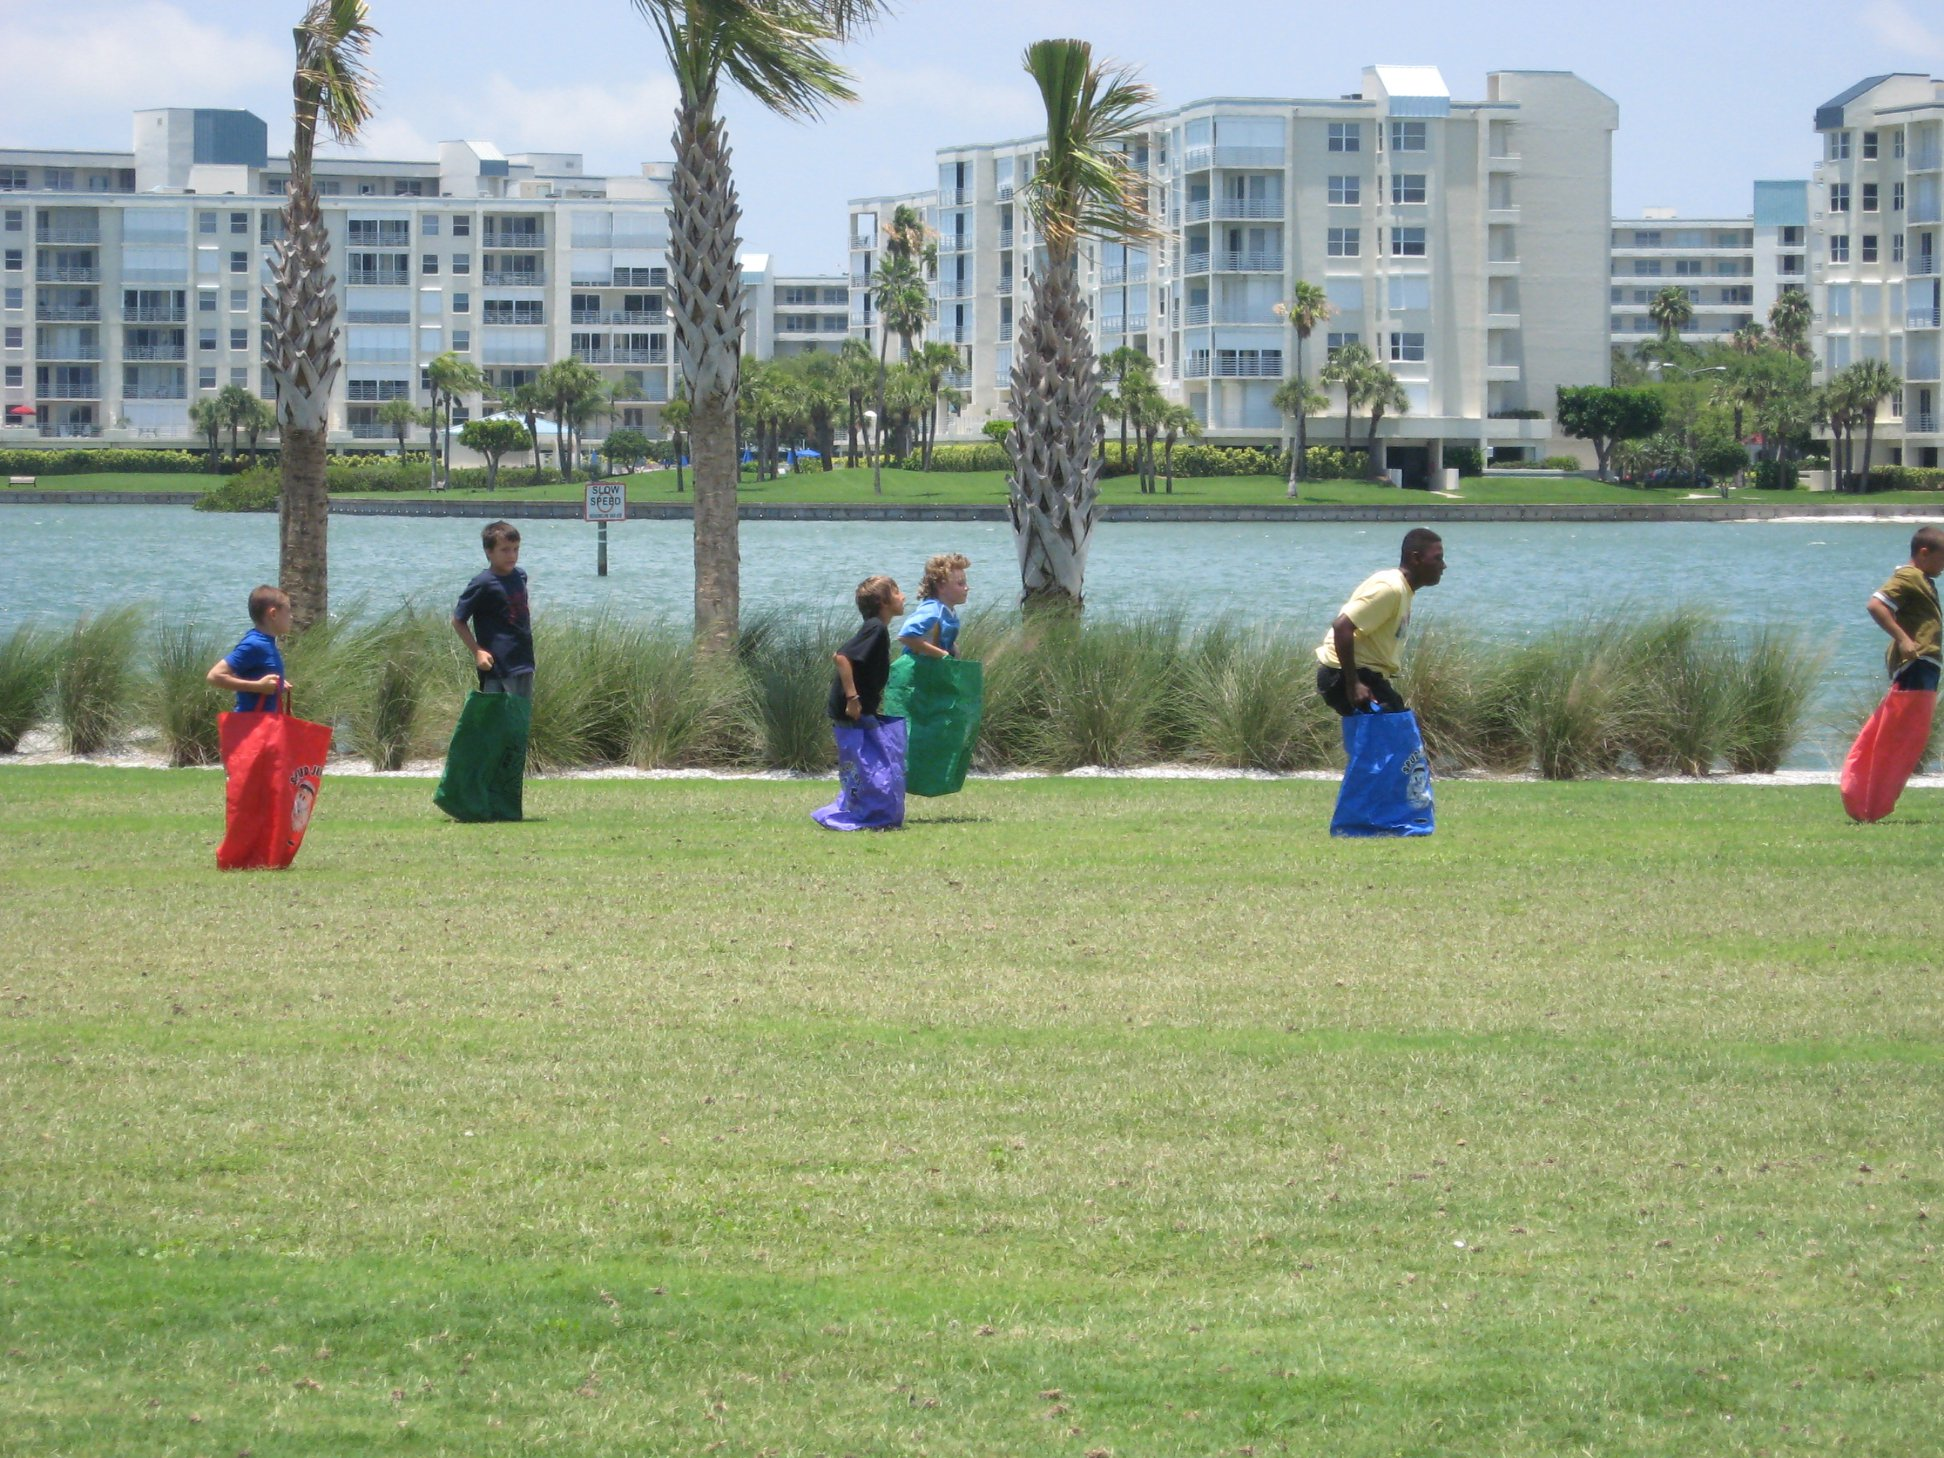 Kids in a sack race with water and buildings in the background